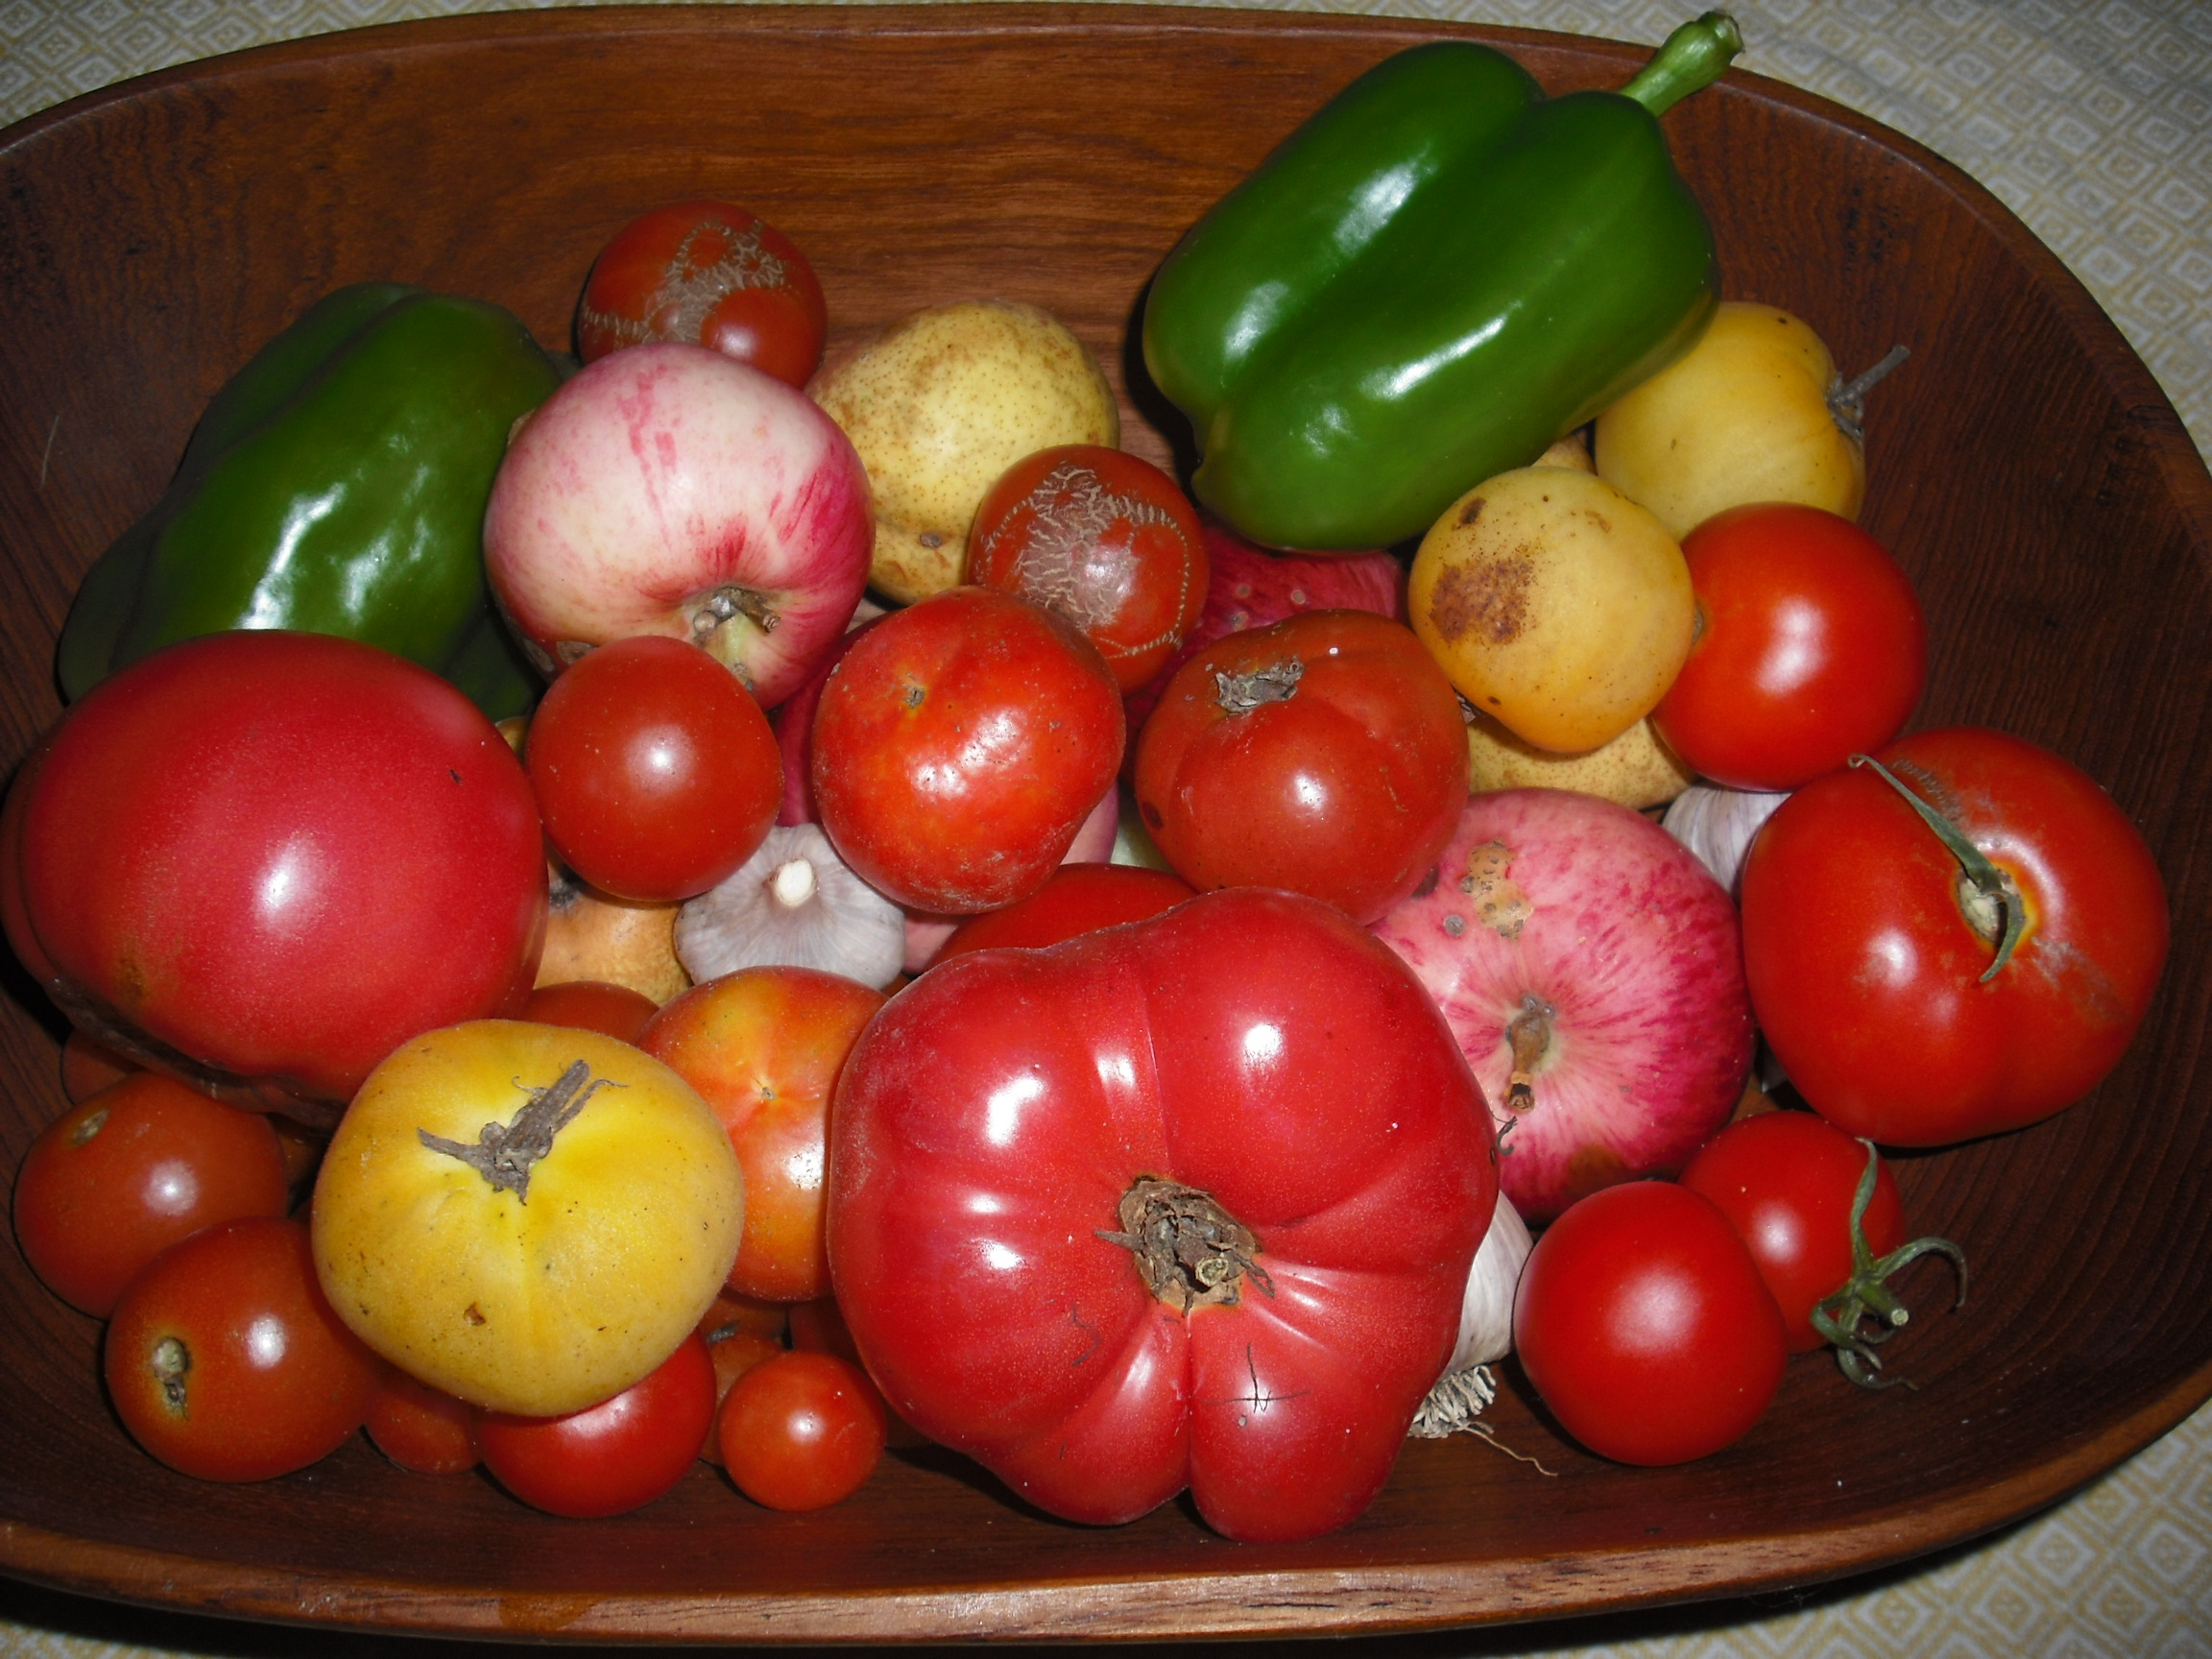 Bowl of heirloom tomatoes